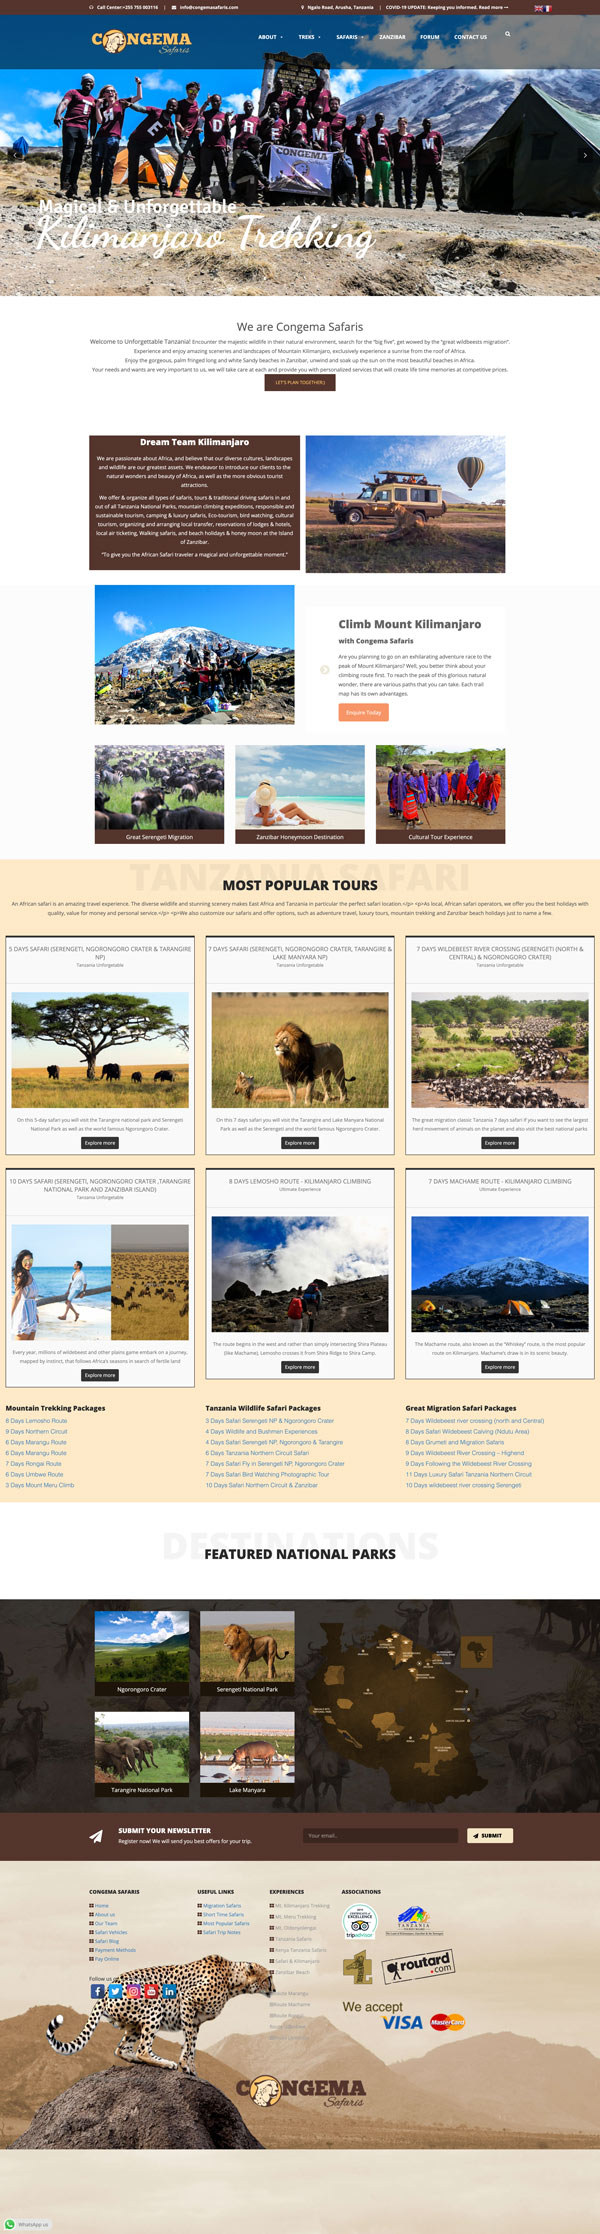 Congema Safaris Website